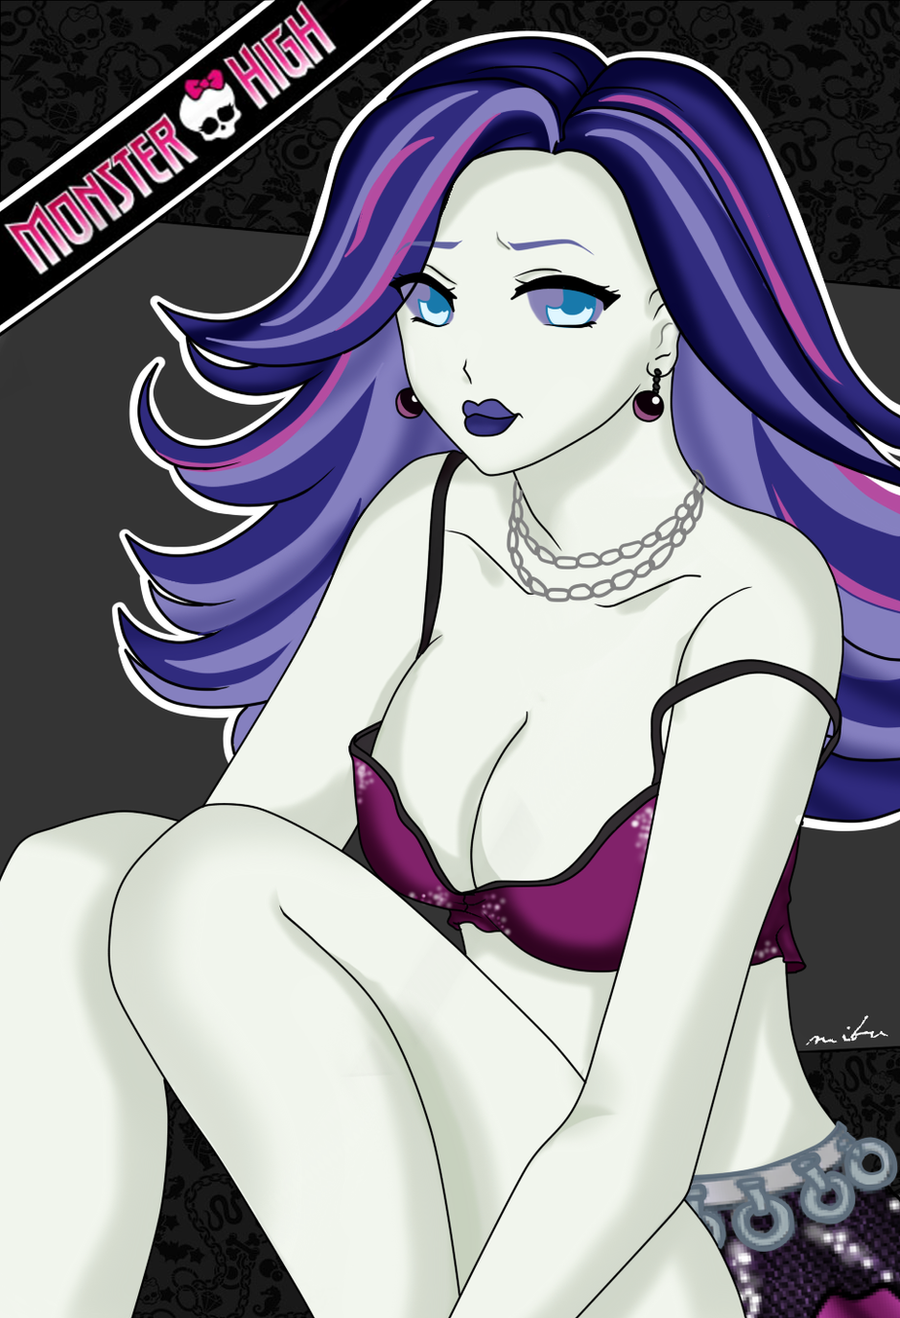 Monster high nudity erotica image